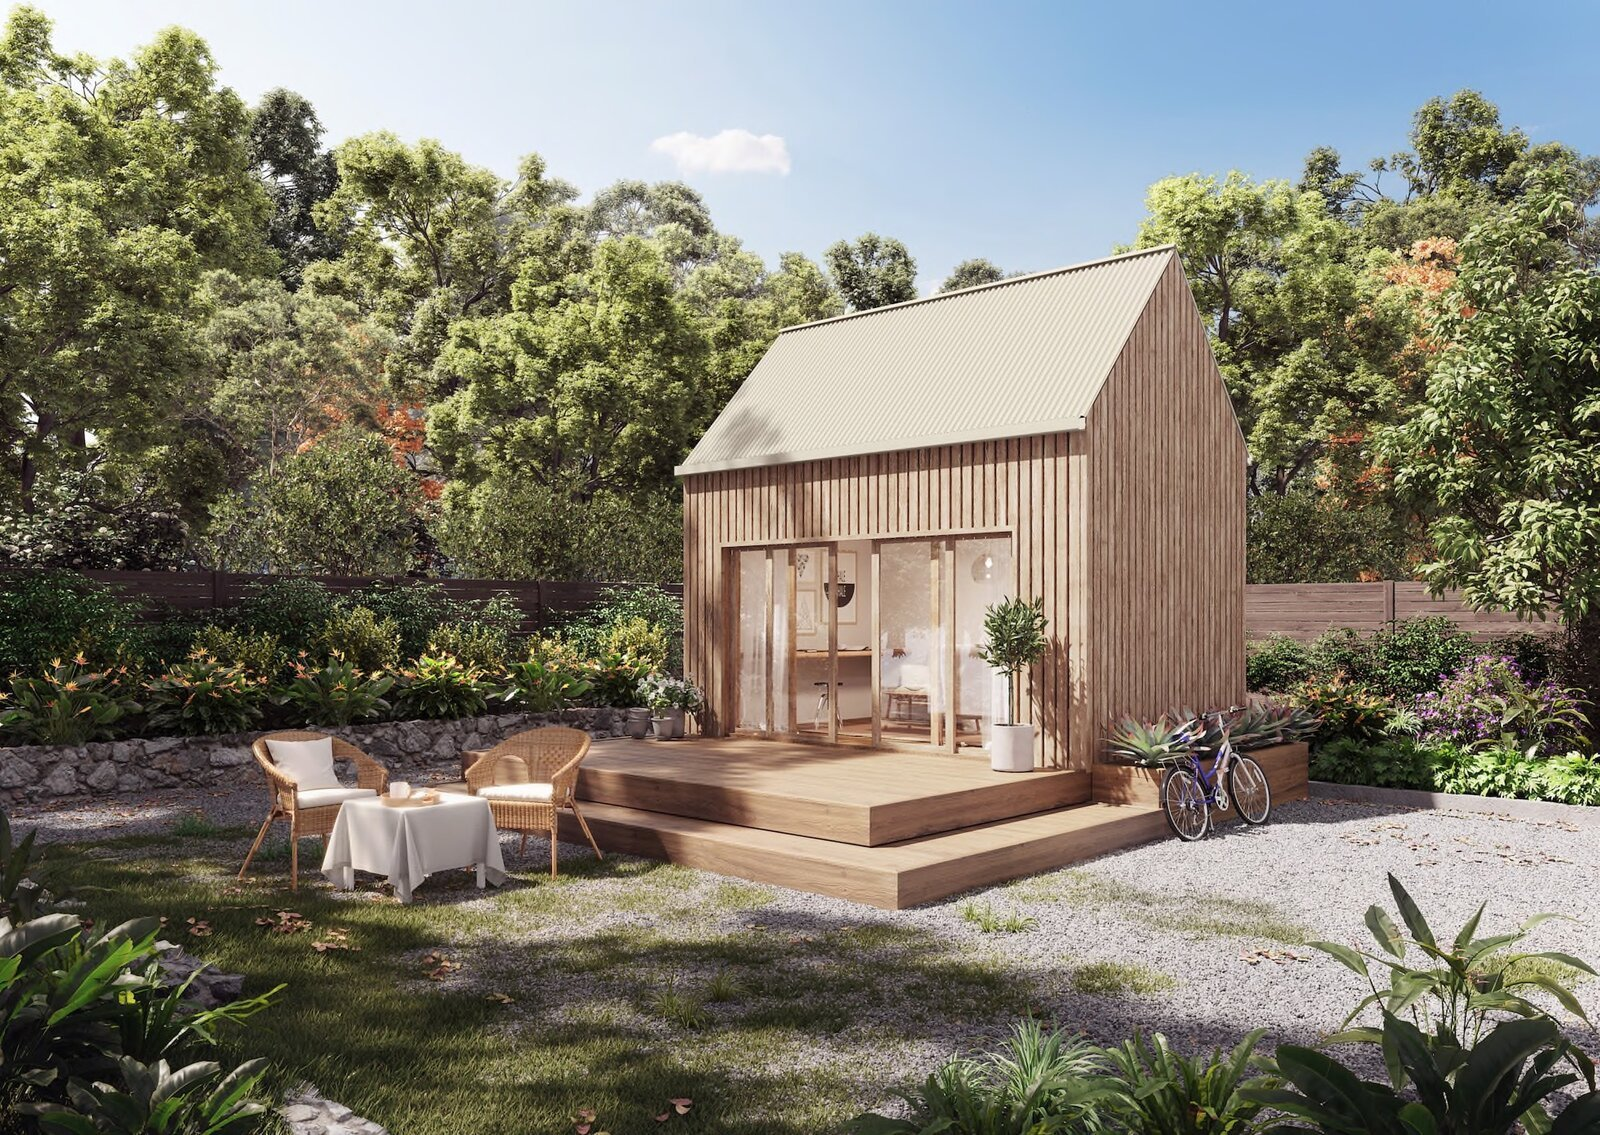 The Traveler Cabin Kit by Coexist Build